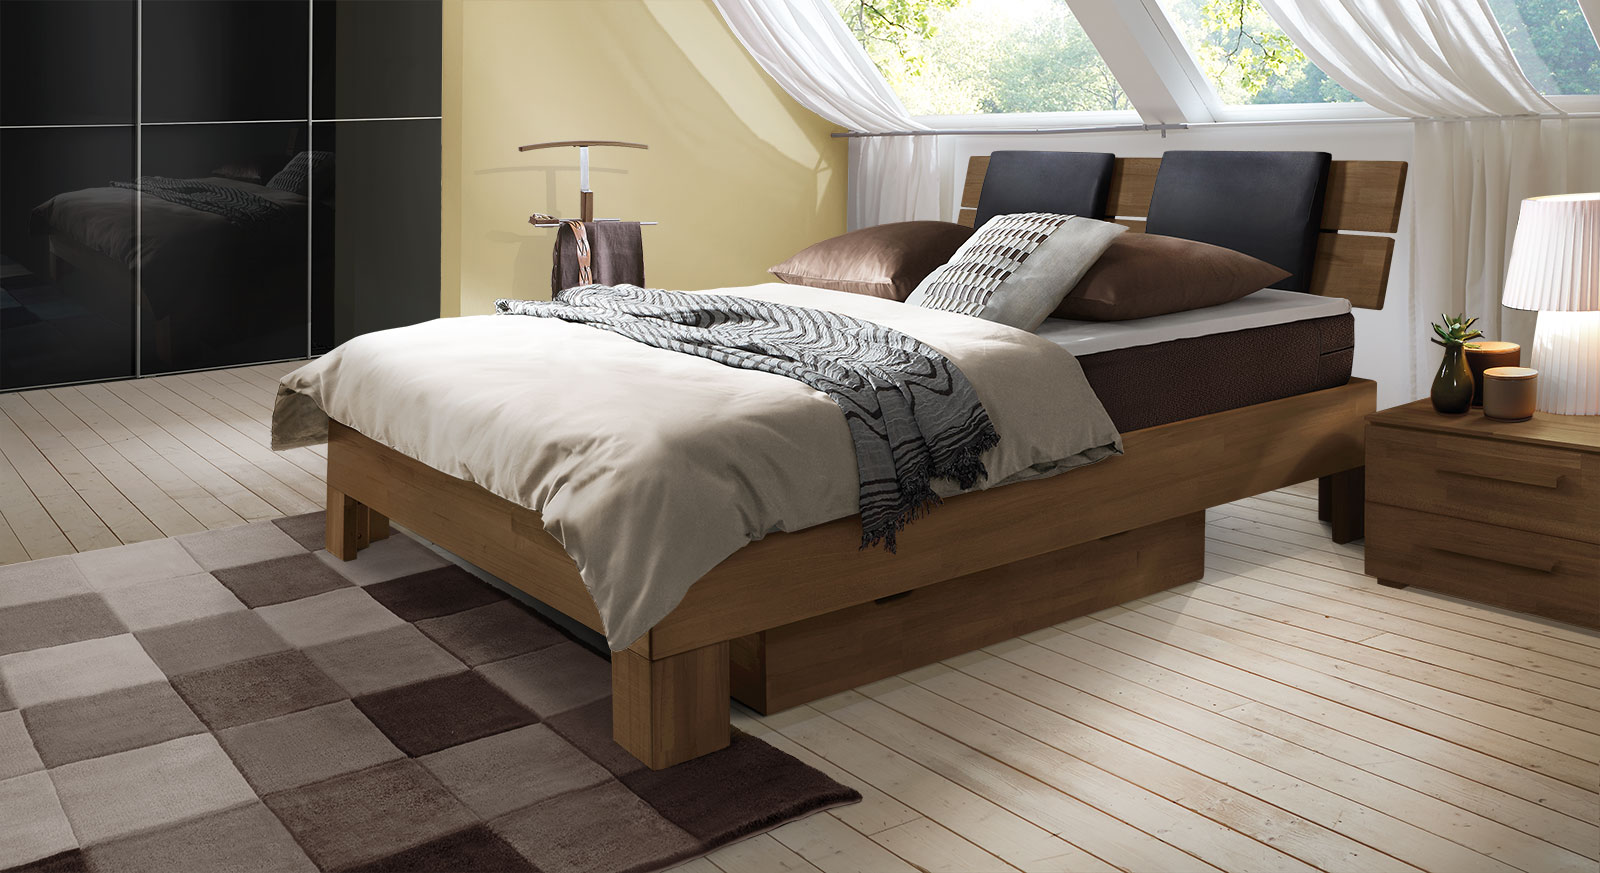 Boxspringbett Port-Louis in Buche nussbaum